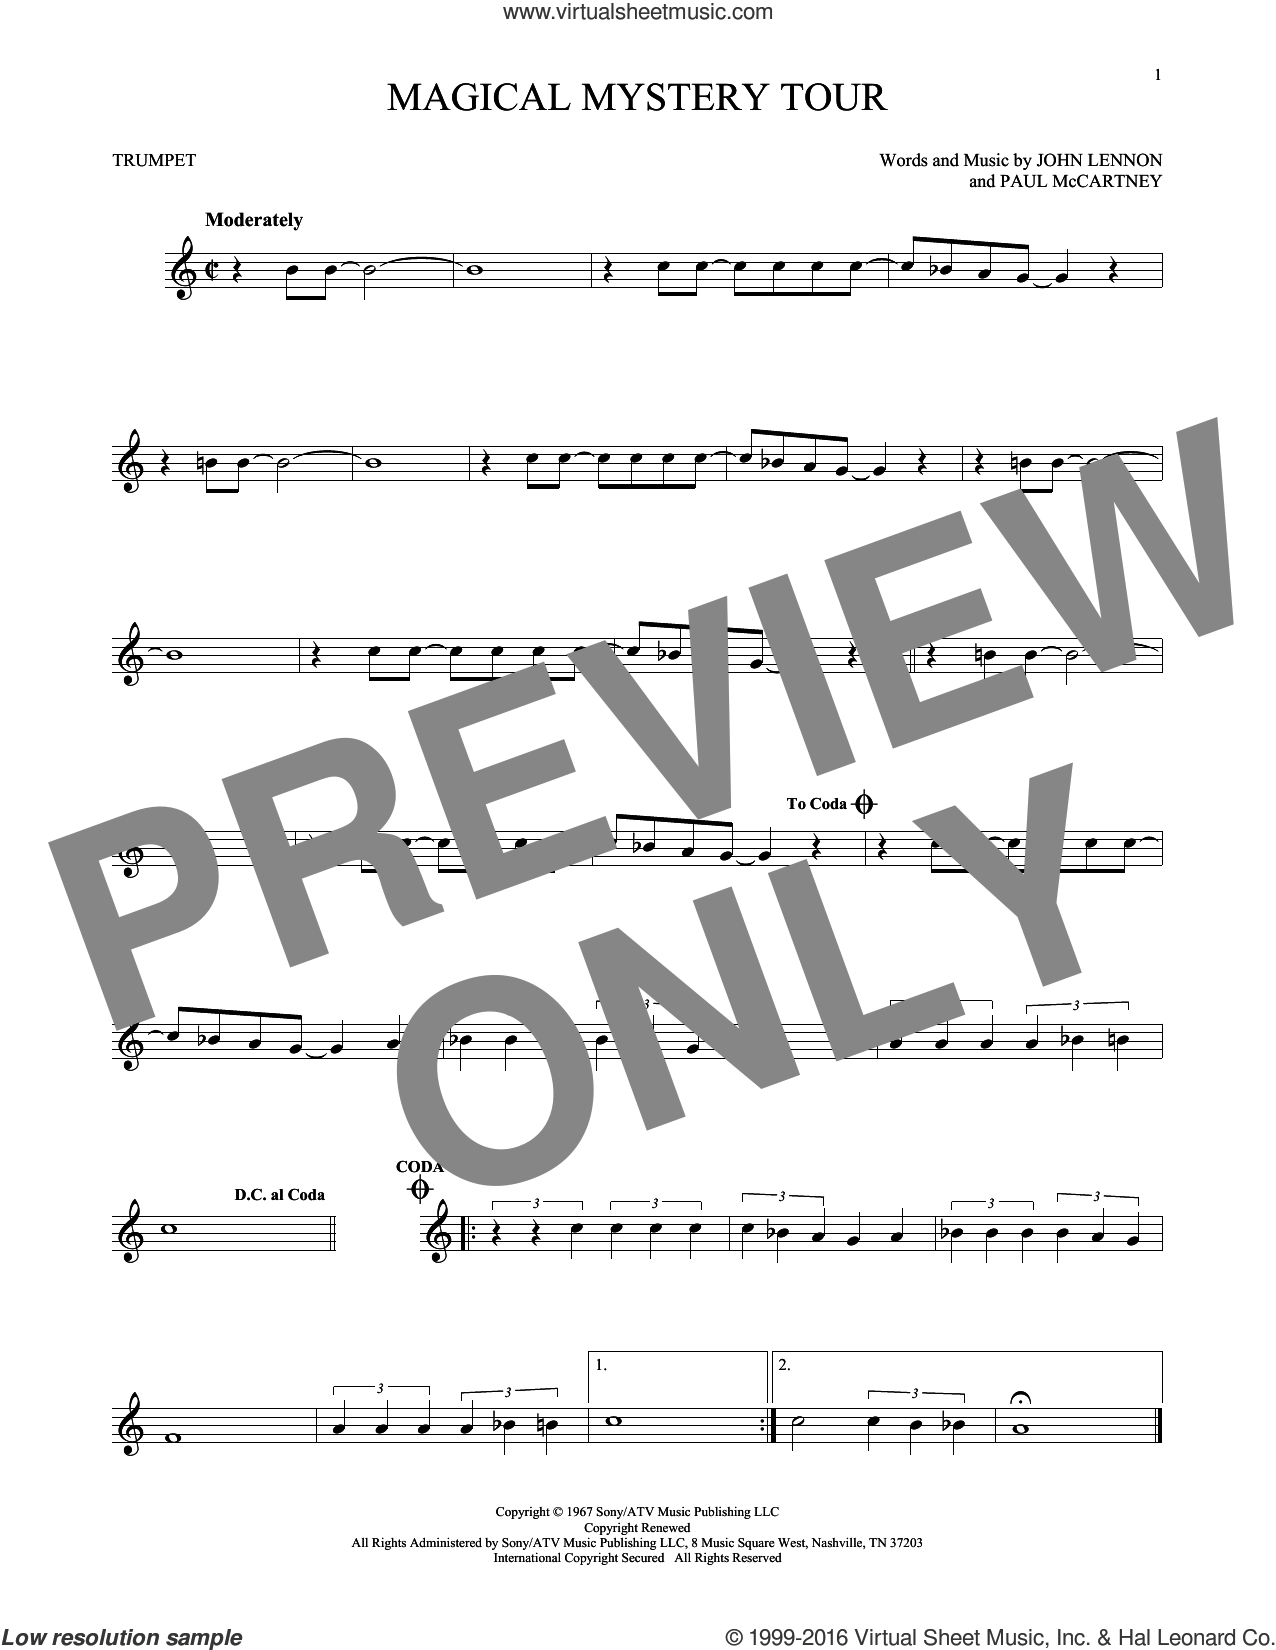 Magical Mystery Tour sheet music for trumpet solo by The Beatles, John Lennon and Paul McCartney, intermediate skill level